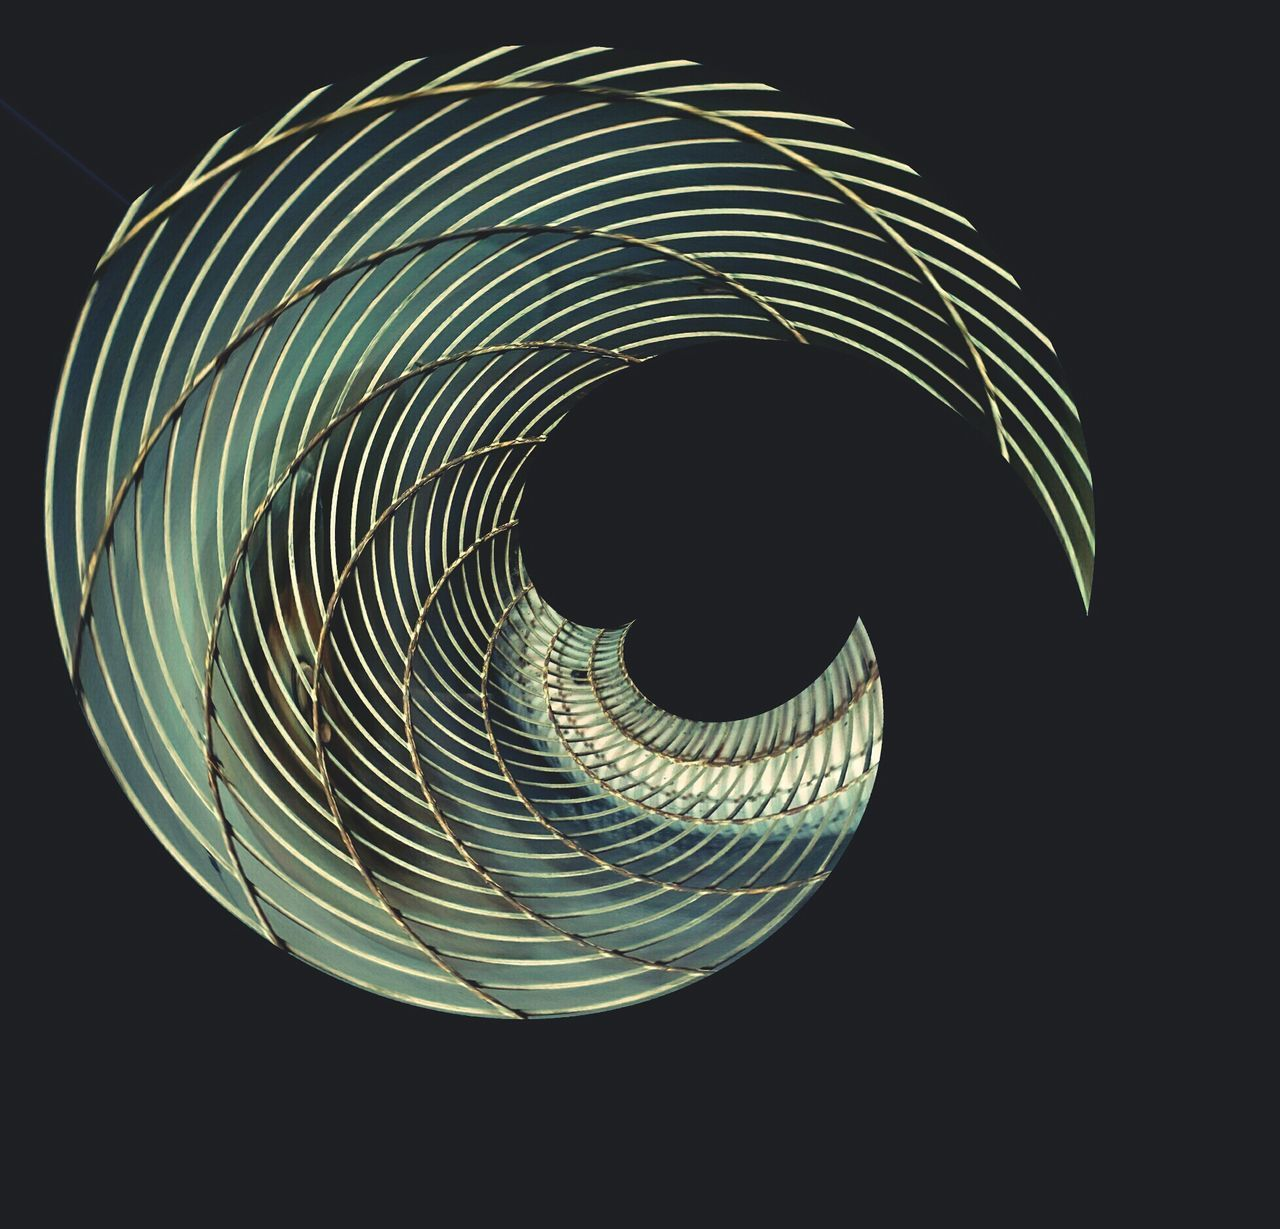 Spiral Ideas Black Background Glowing Curled Up Darkroom Concentric Creativity Dark Geometric Shape Circular Electric Light Curve Art Product Bright Vibrant Color